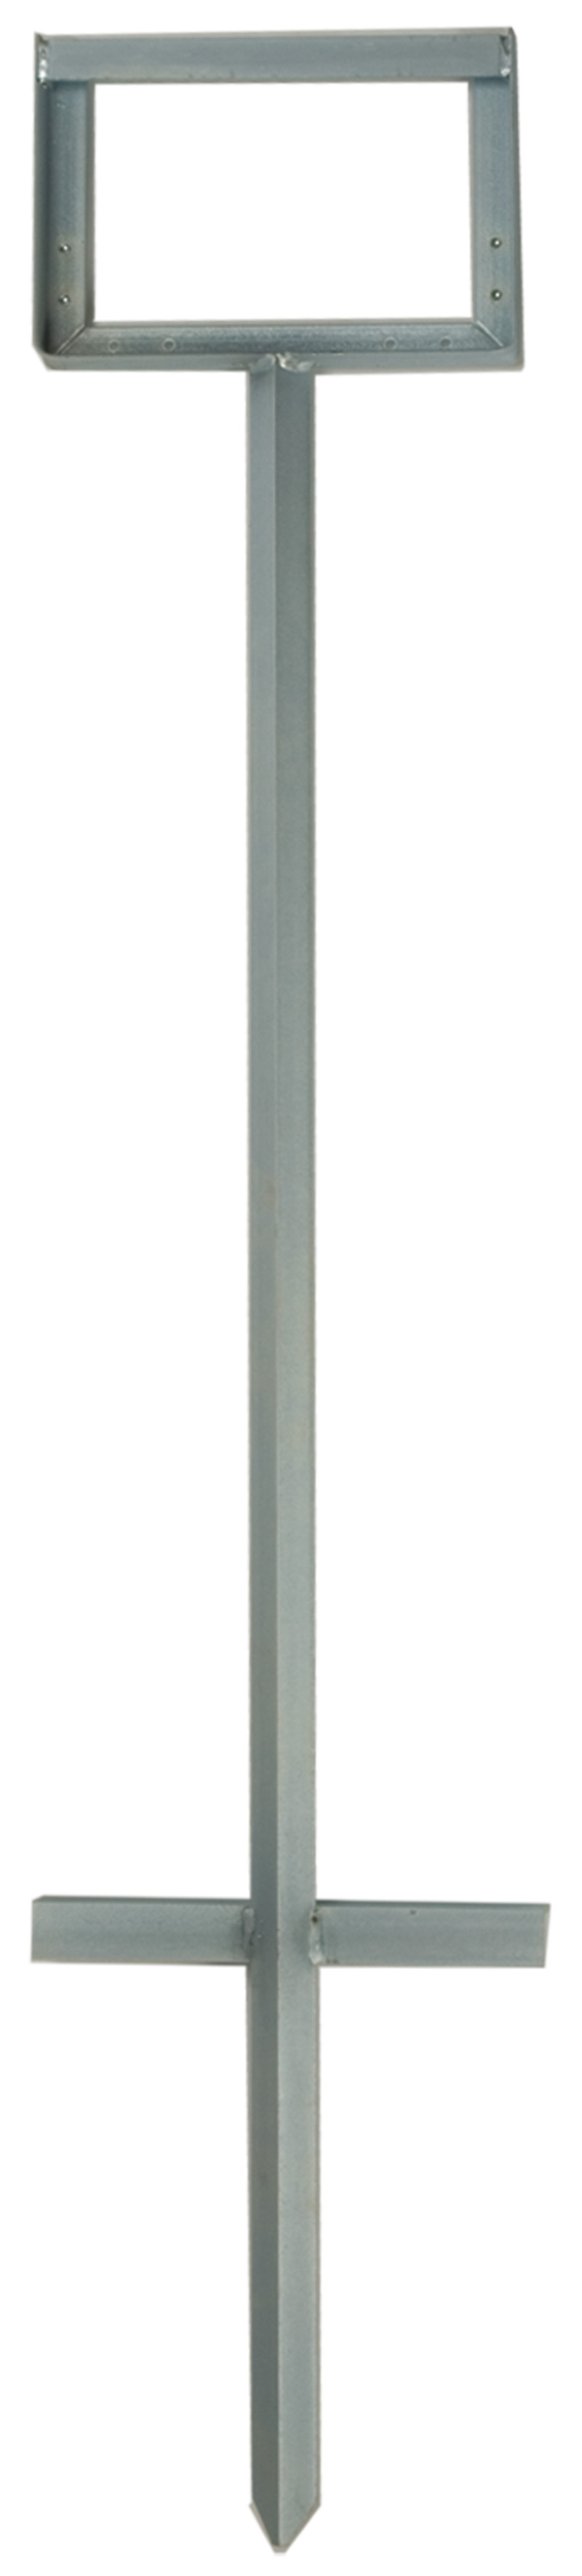 Metal Road Sign Stands With A Rectangular Top And Extends With An Intersection At The Base